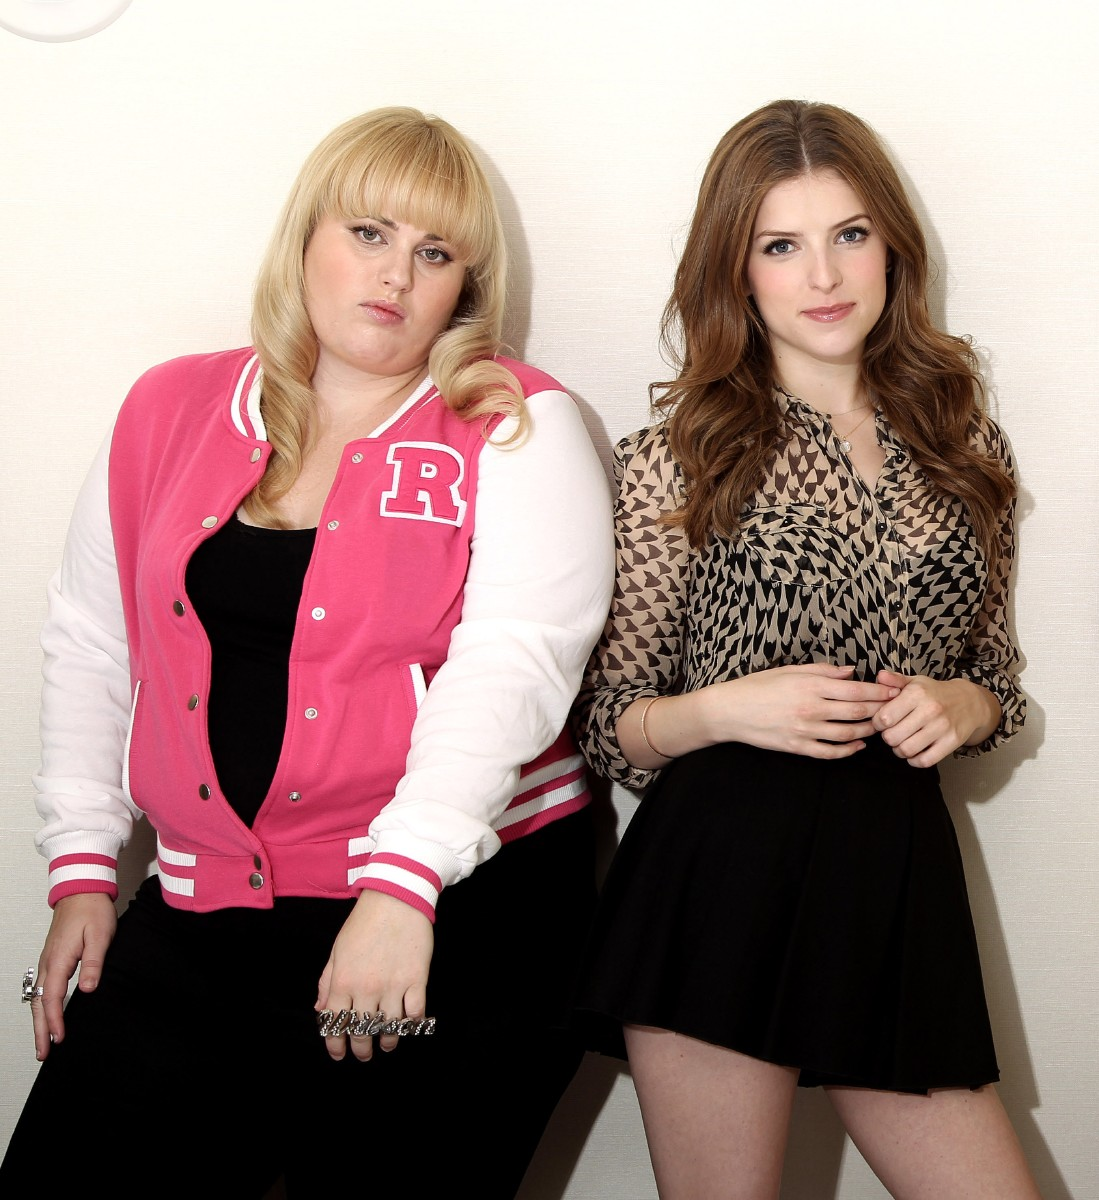 "FILE - This Sept. 21, 2012 file photo shows actors Rebel Wilson, left, and Anna Kendrick, from the film ""Pitch Perfect"", posing in West Hollywood, Calif. Wilson and Kendrick will return for a third film in the ""Pitch Perfect"" franchise. ?Pitch Perfect,? about a college all-girls a cappella singing group, has grown into a powerful box-office force. After the 2012 original made $115.4 million worldwide, ?Pitch Perfect 2? has taken in $259.7 million globally since opening May 15. (Photo by Matt Sayles/Invision/AP, file)"